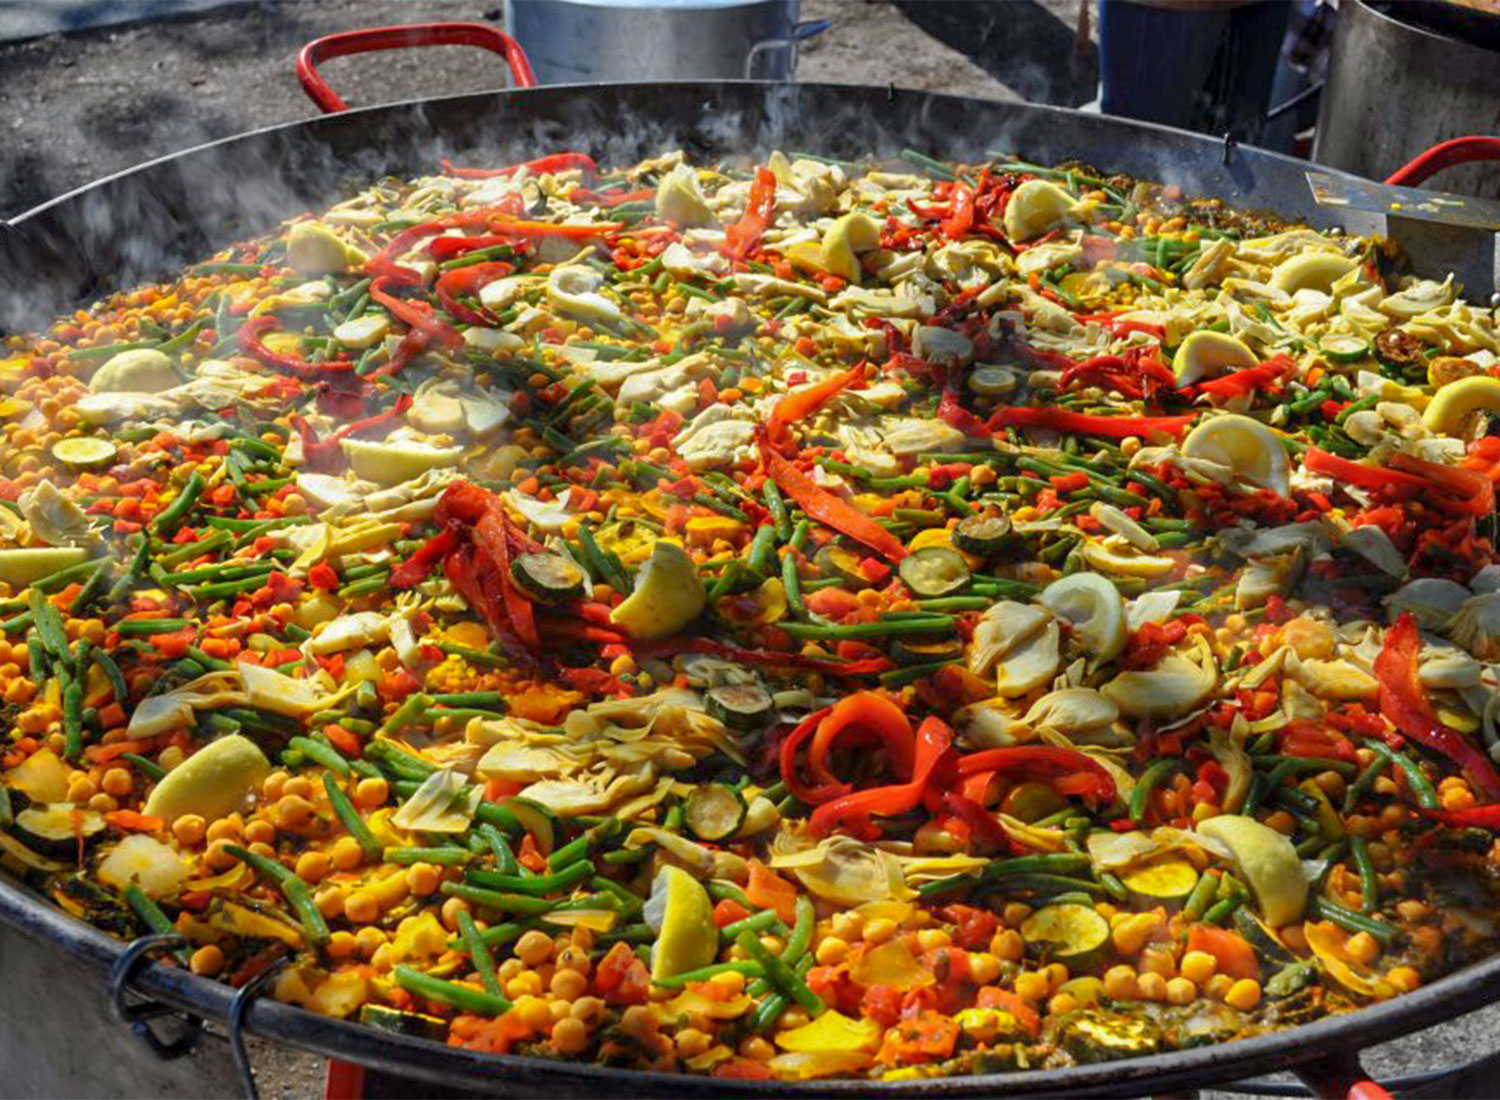 A large pan of paella from Gerard's Paella catering at Wednesday Night Market in Santa Rosa. Heather Irwin/PD